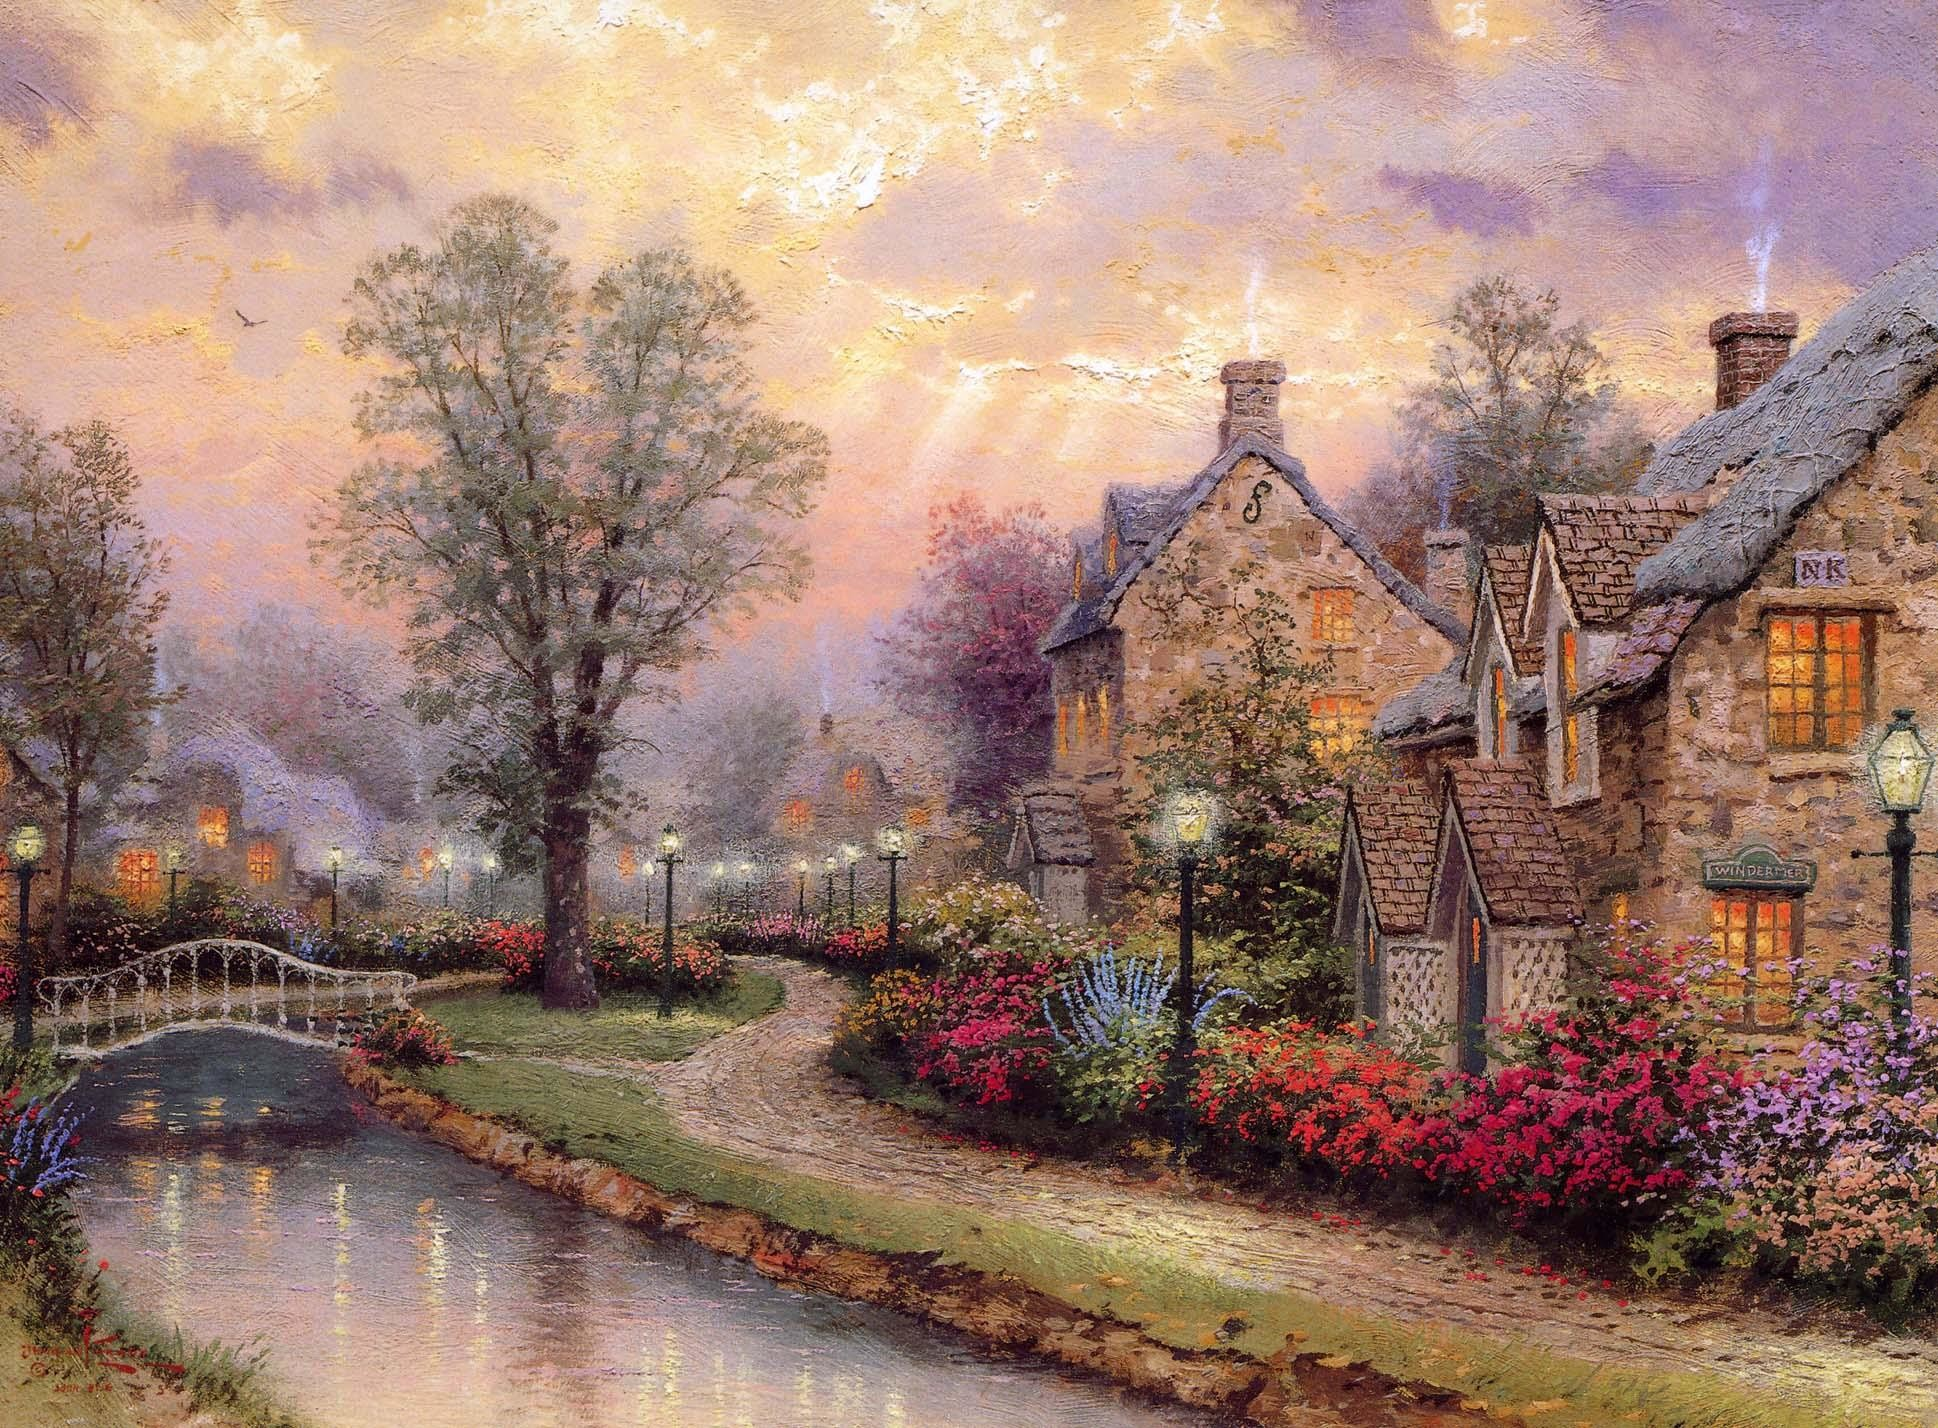 Thomas Kinkade Fall Desktop Wallpaper Thomas Kinkade Christmas Backgrounds 56 Images